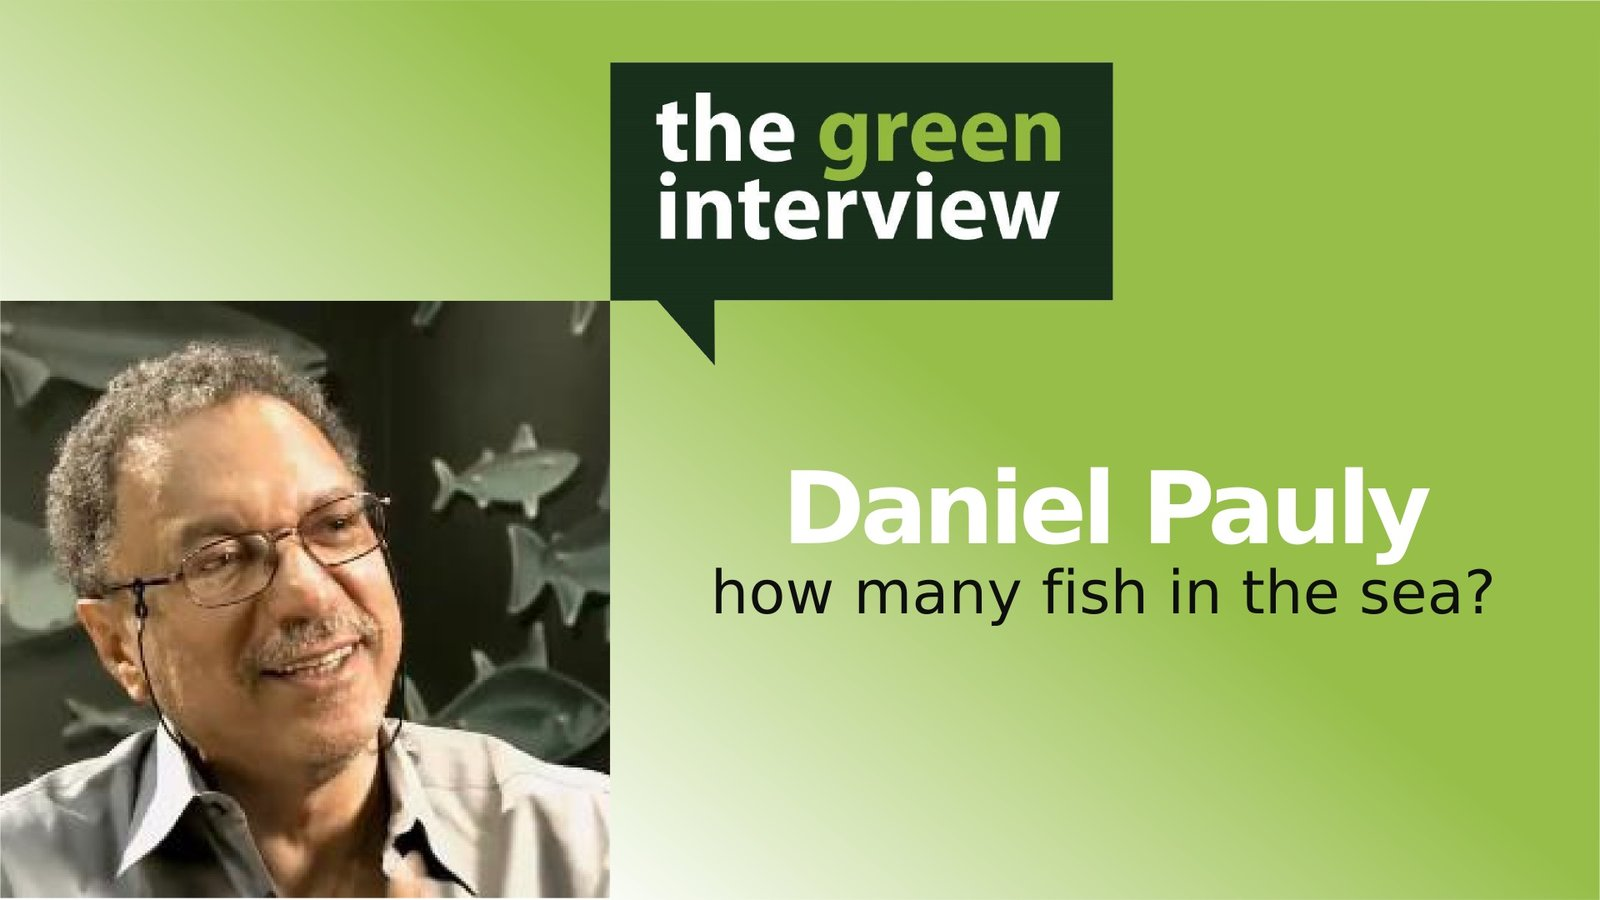 Daniel Pauly: How Many Fish in the Sea?